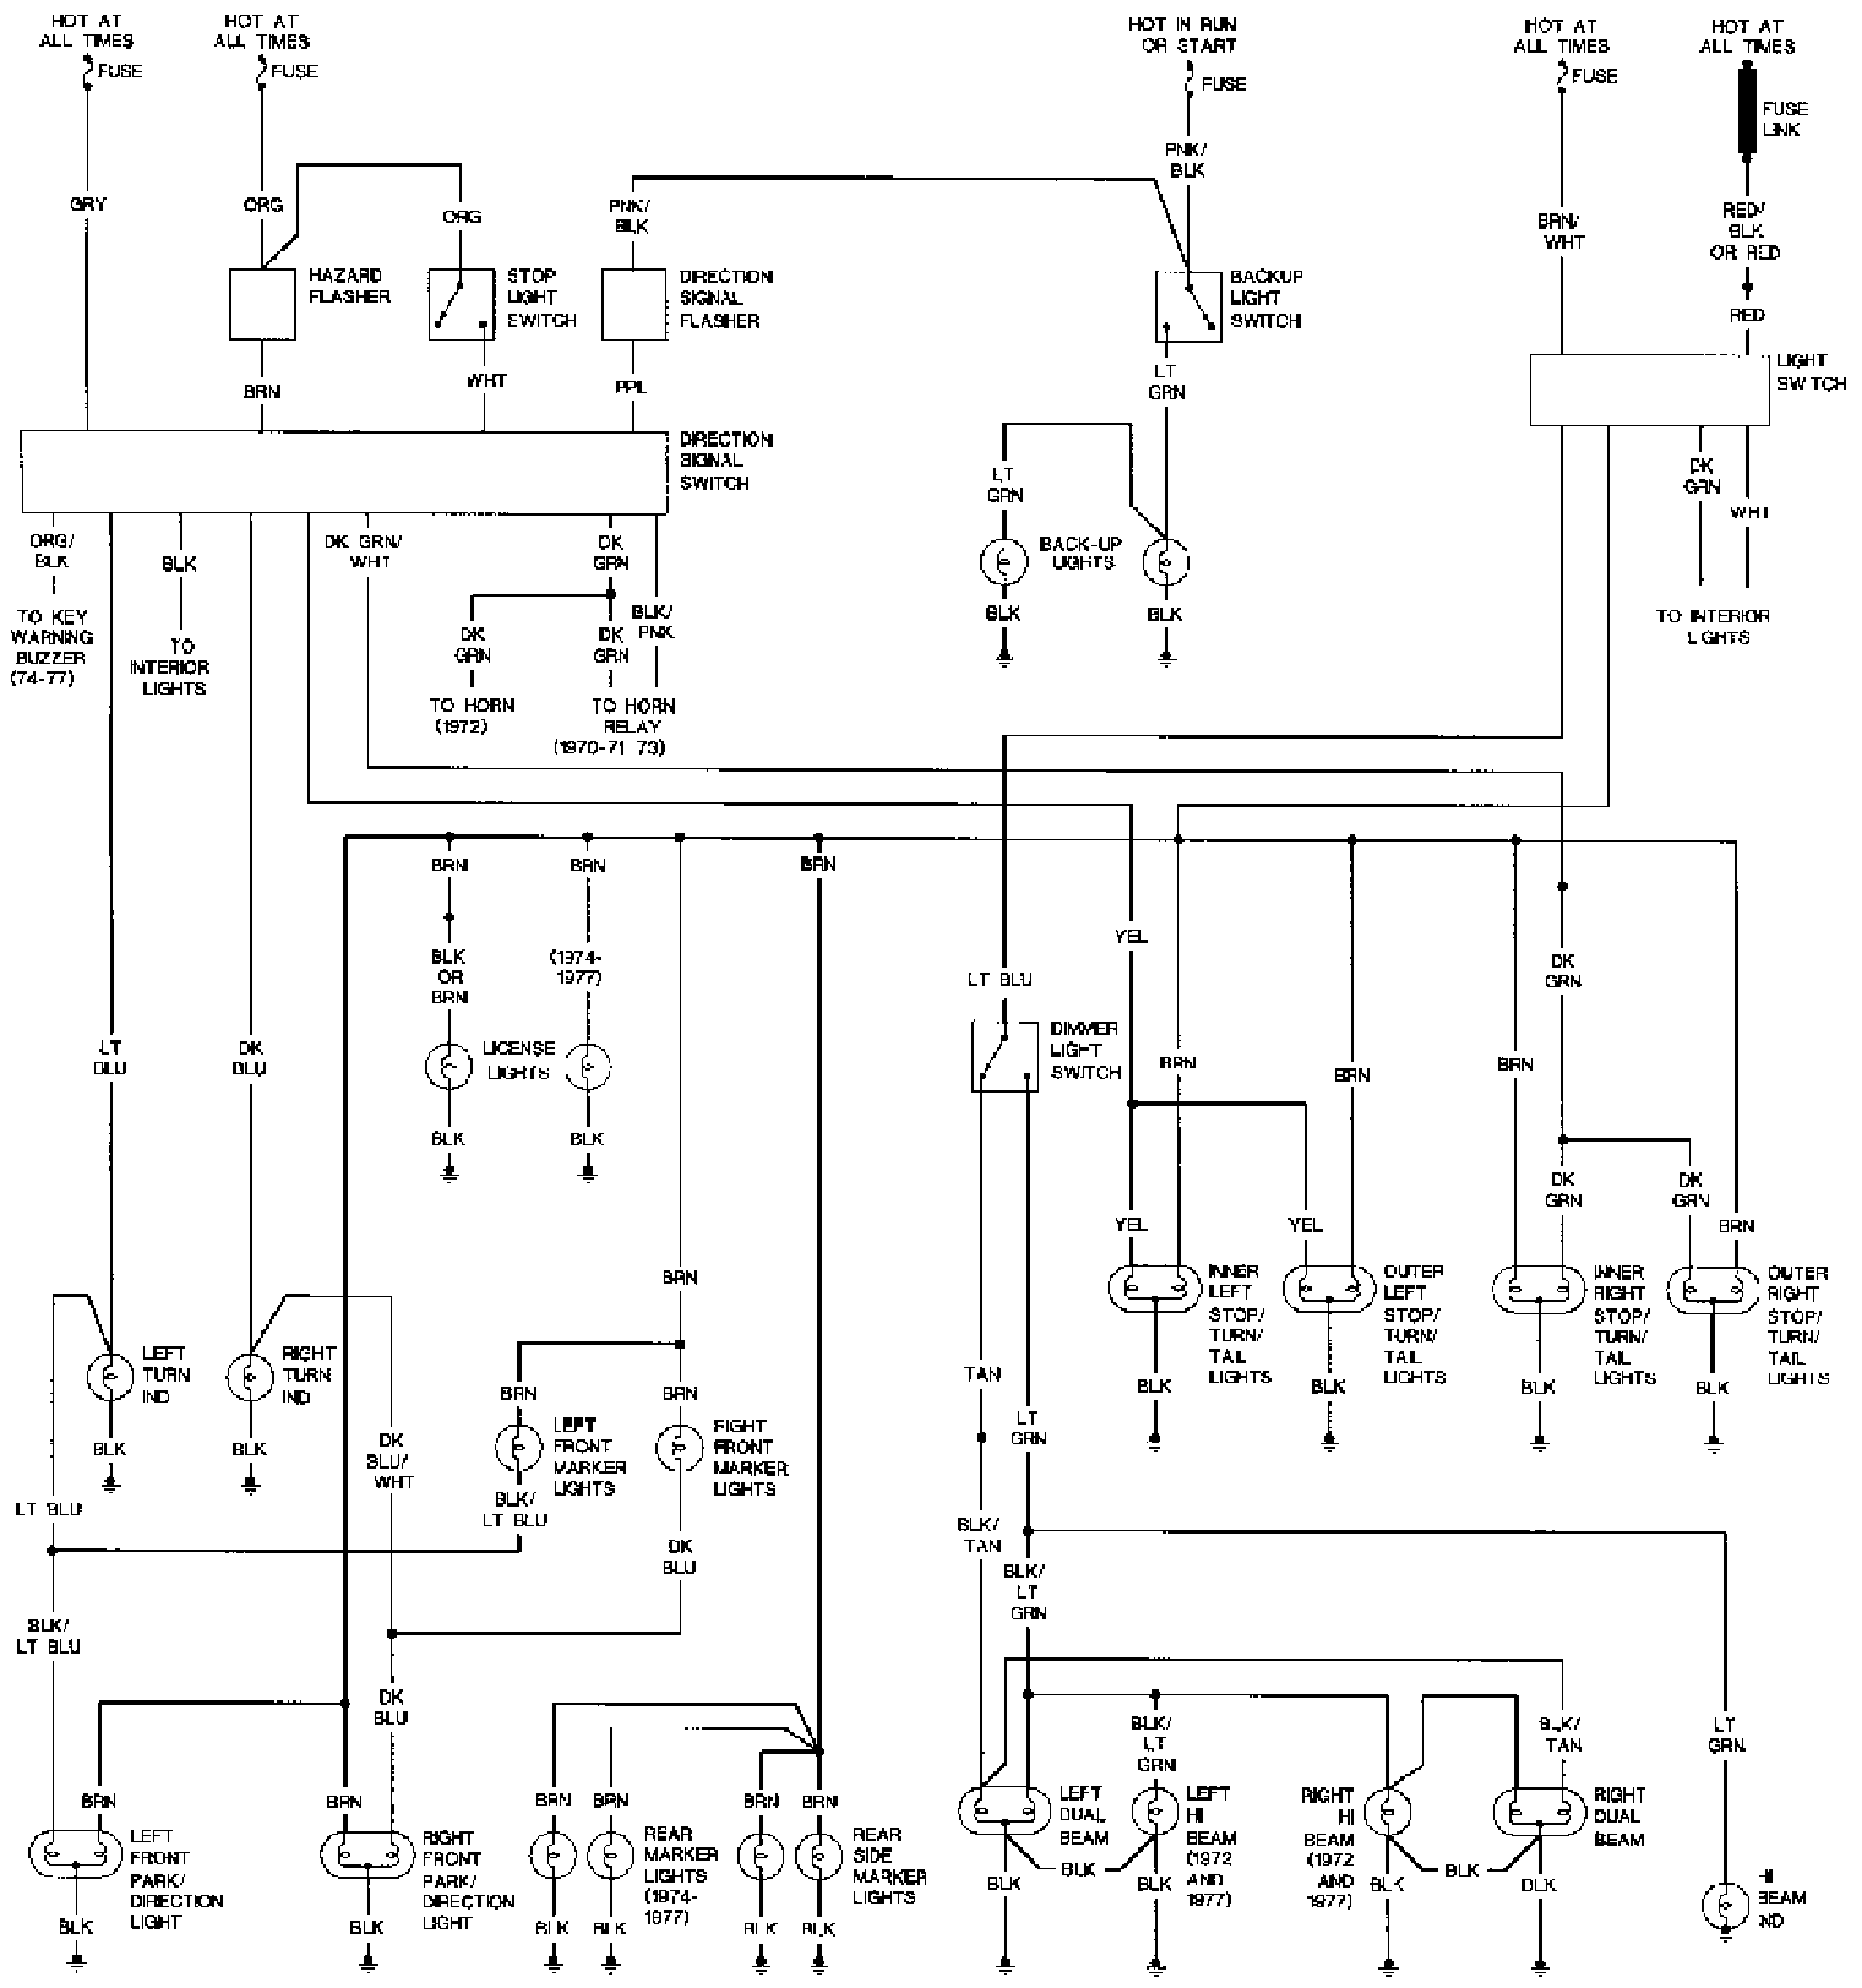 1982 Firebird Wiring Diagram Full Hd Version Wiring Diagram Fault Tree Analysis Emballages Sous Vide Fr